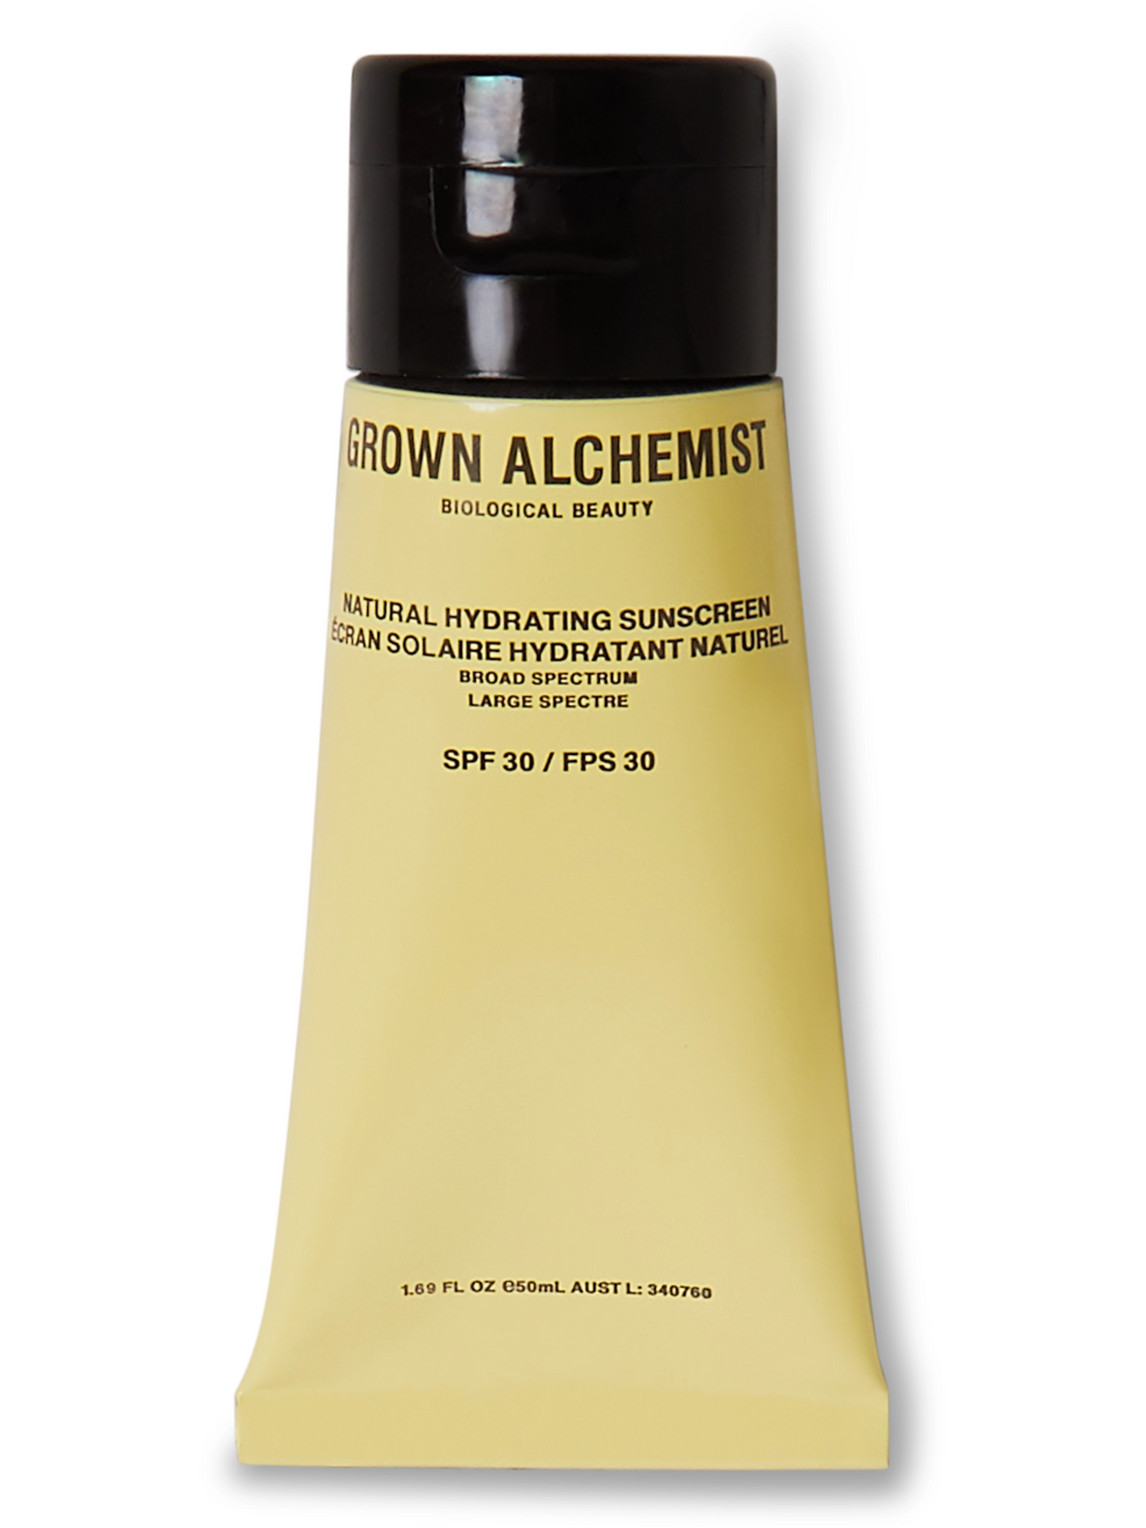 Grown Alchemist Natural Hydrating Sunscreen Spf30, 50ml In Colorless